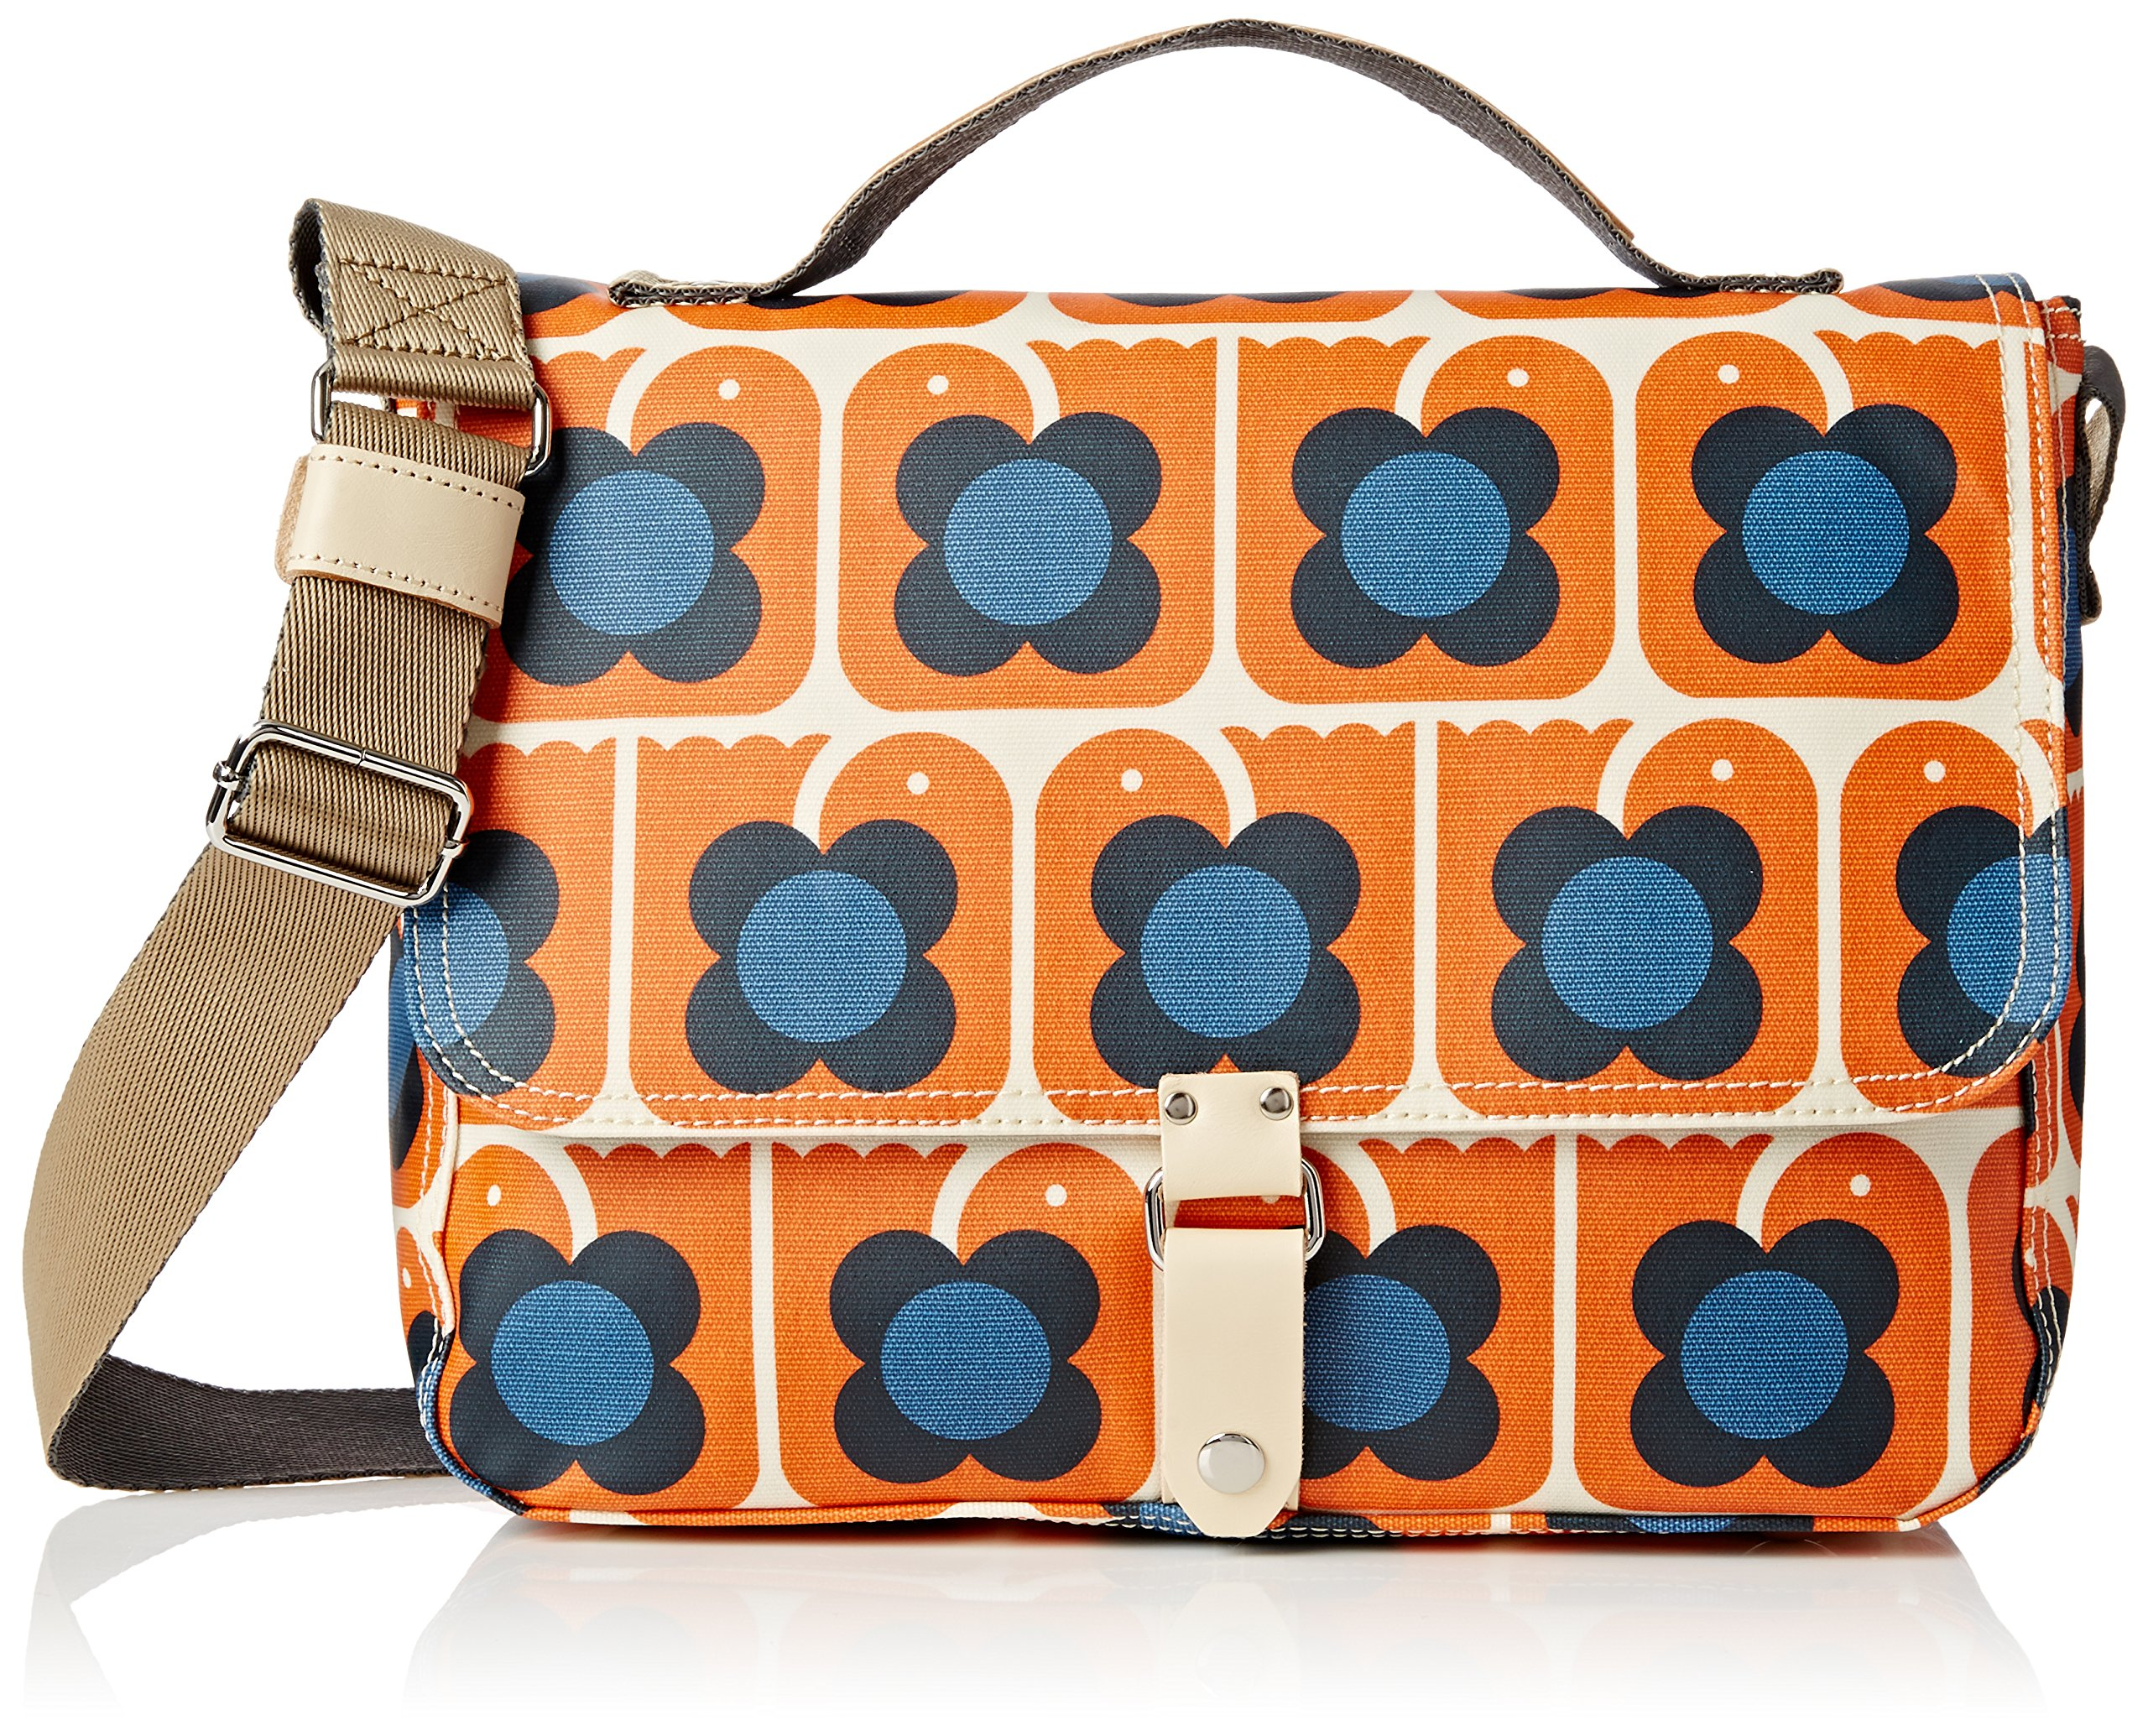 Orla Kiely Love Birds Print Satchel Bag, Persimmon